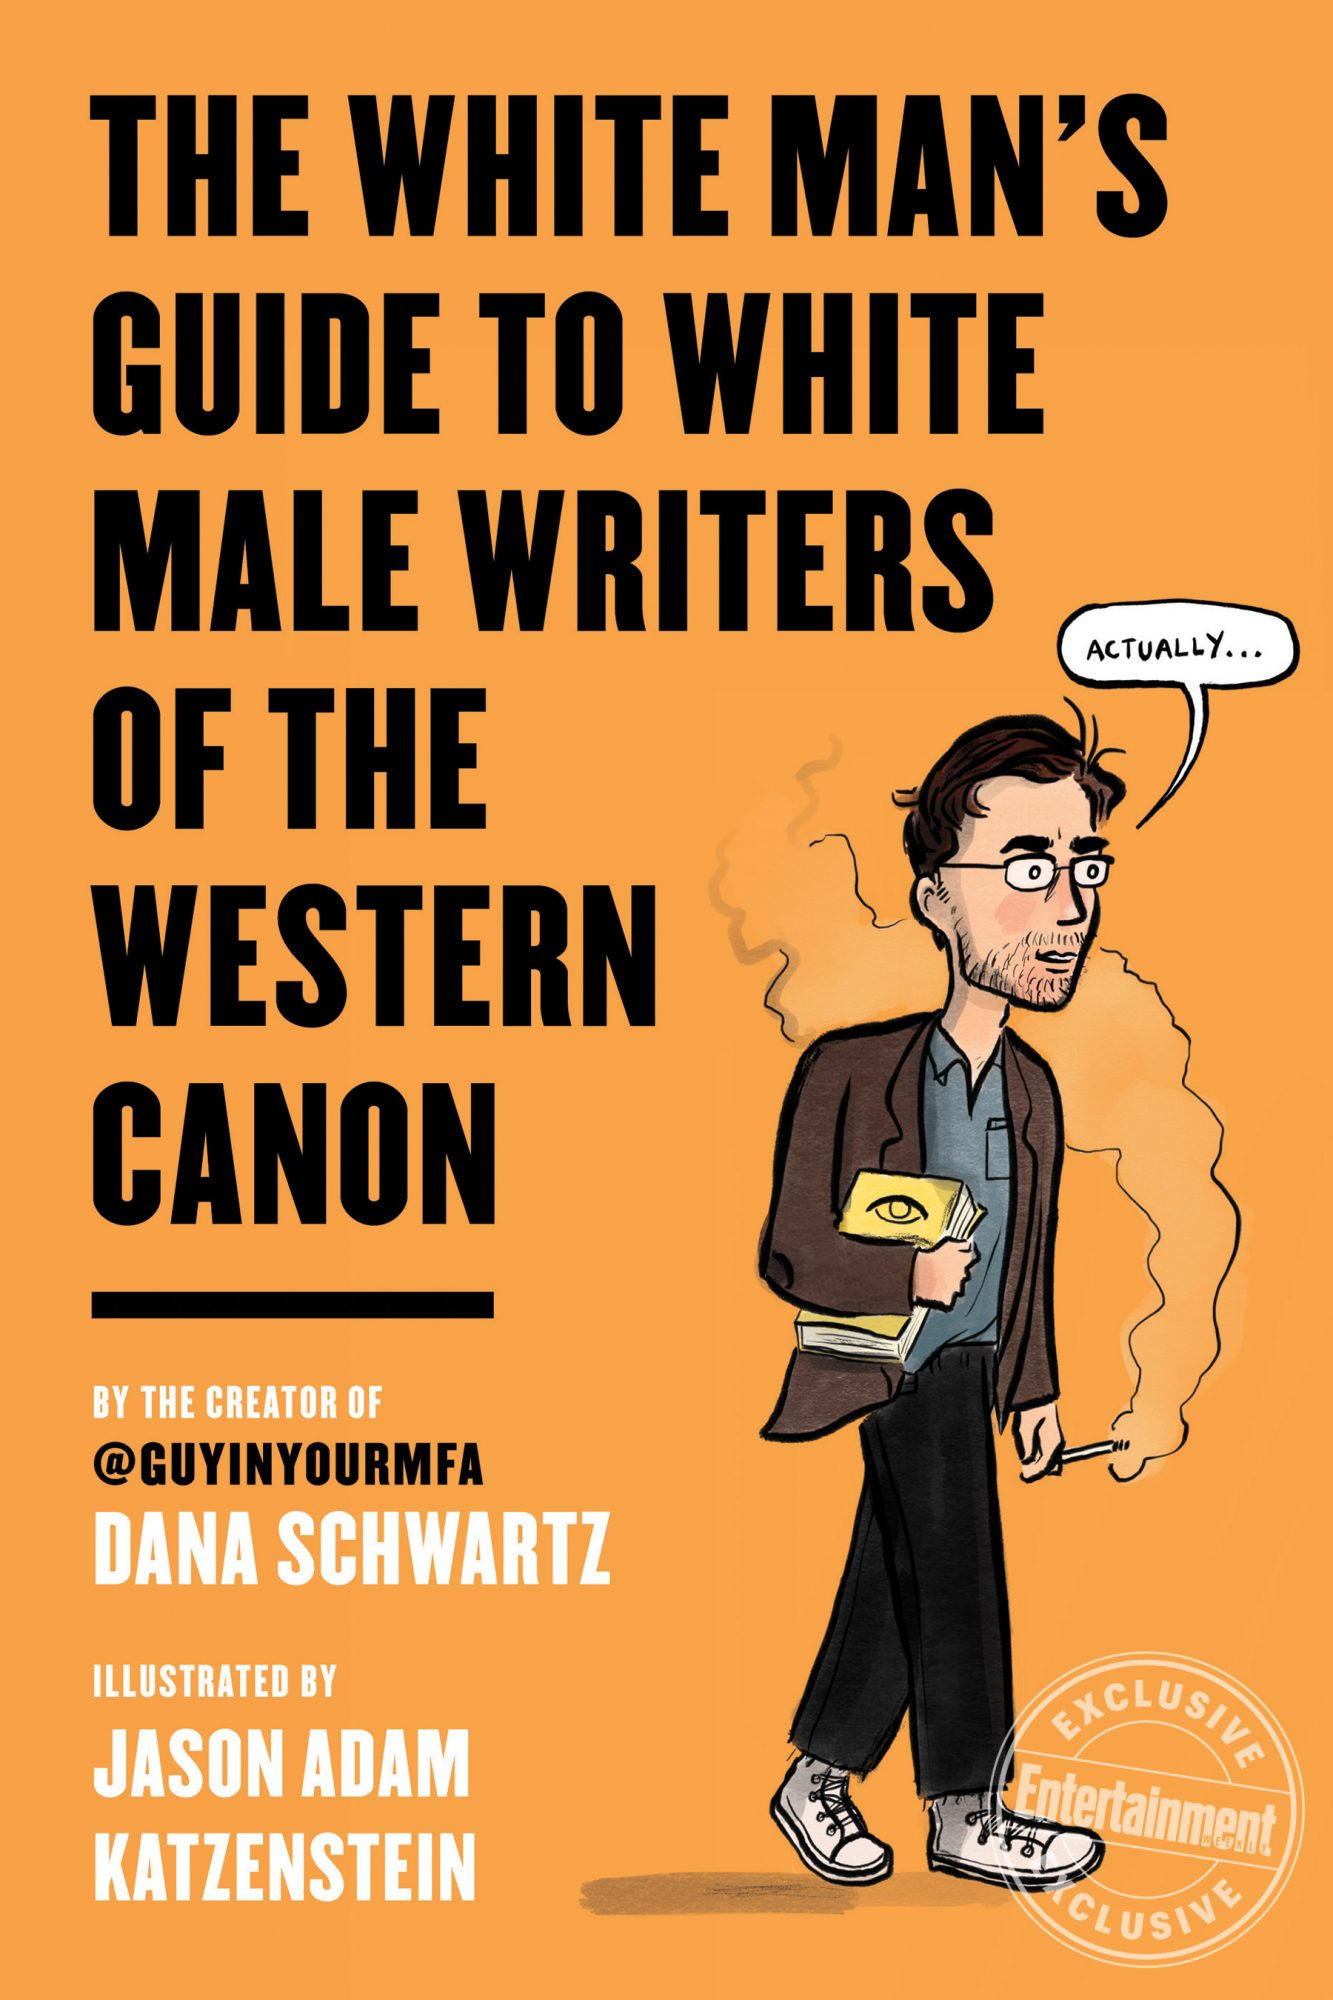 The White Man's Guide to White Male Writers of the Western Union